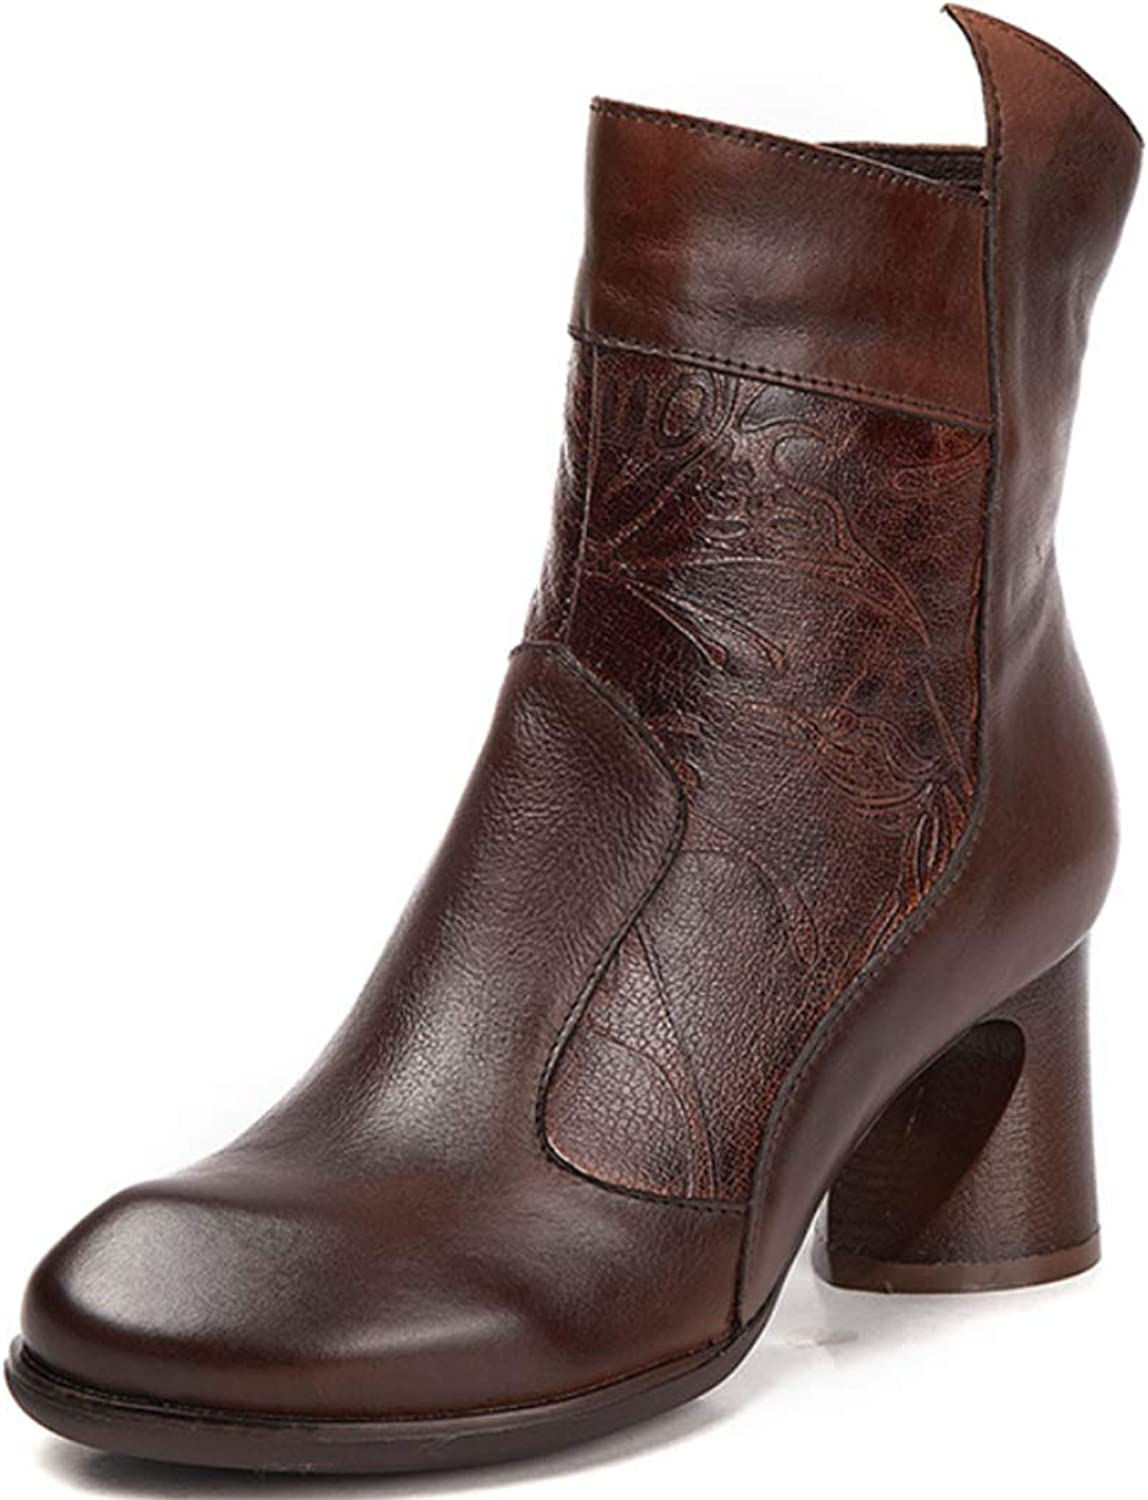 Women's Martin Boots Leather Round Head high Heel Boots Thick with Side Zipper Ethnic Style Retro Carved Pattern Decorative Single Boots